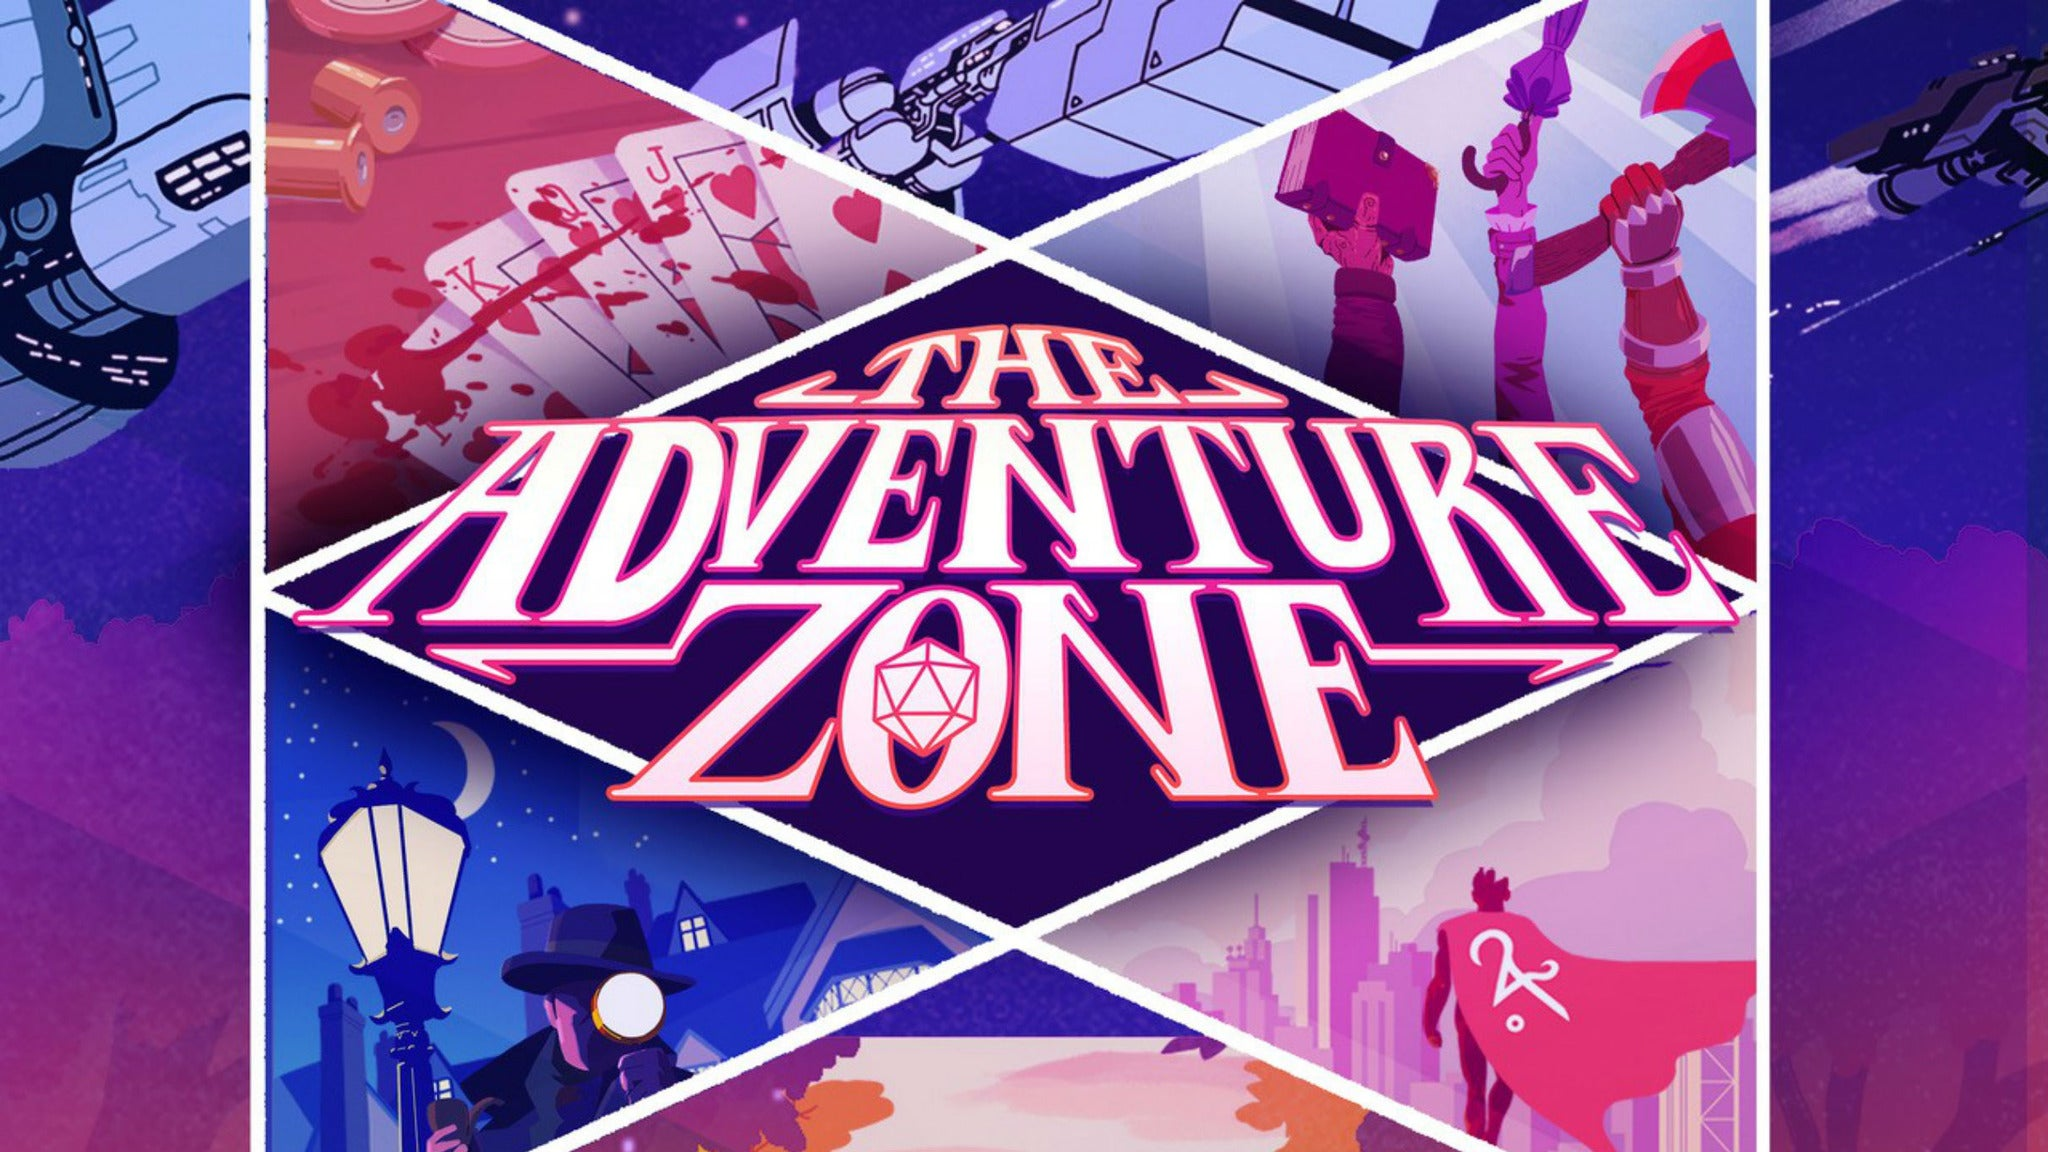 The Adventure Zone at Cobb Energy Performing Arts Centre